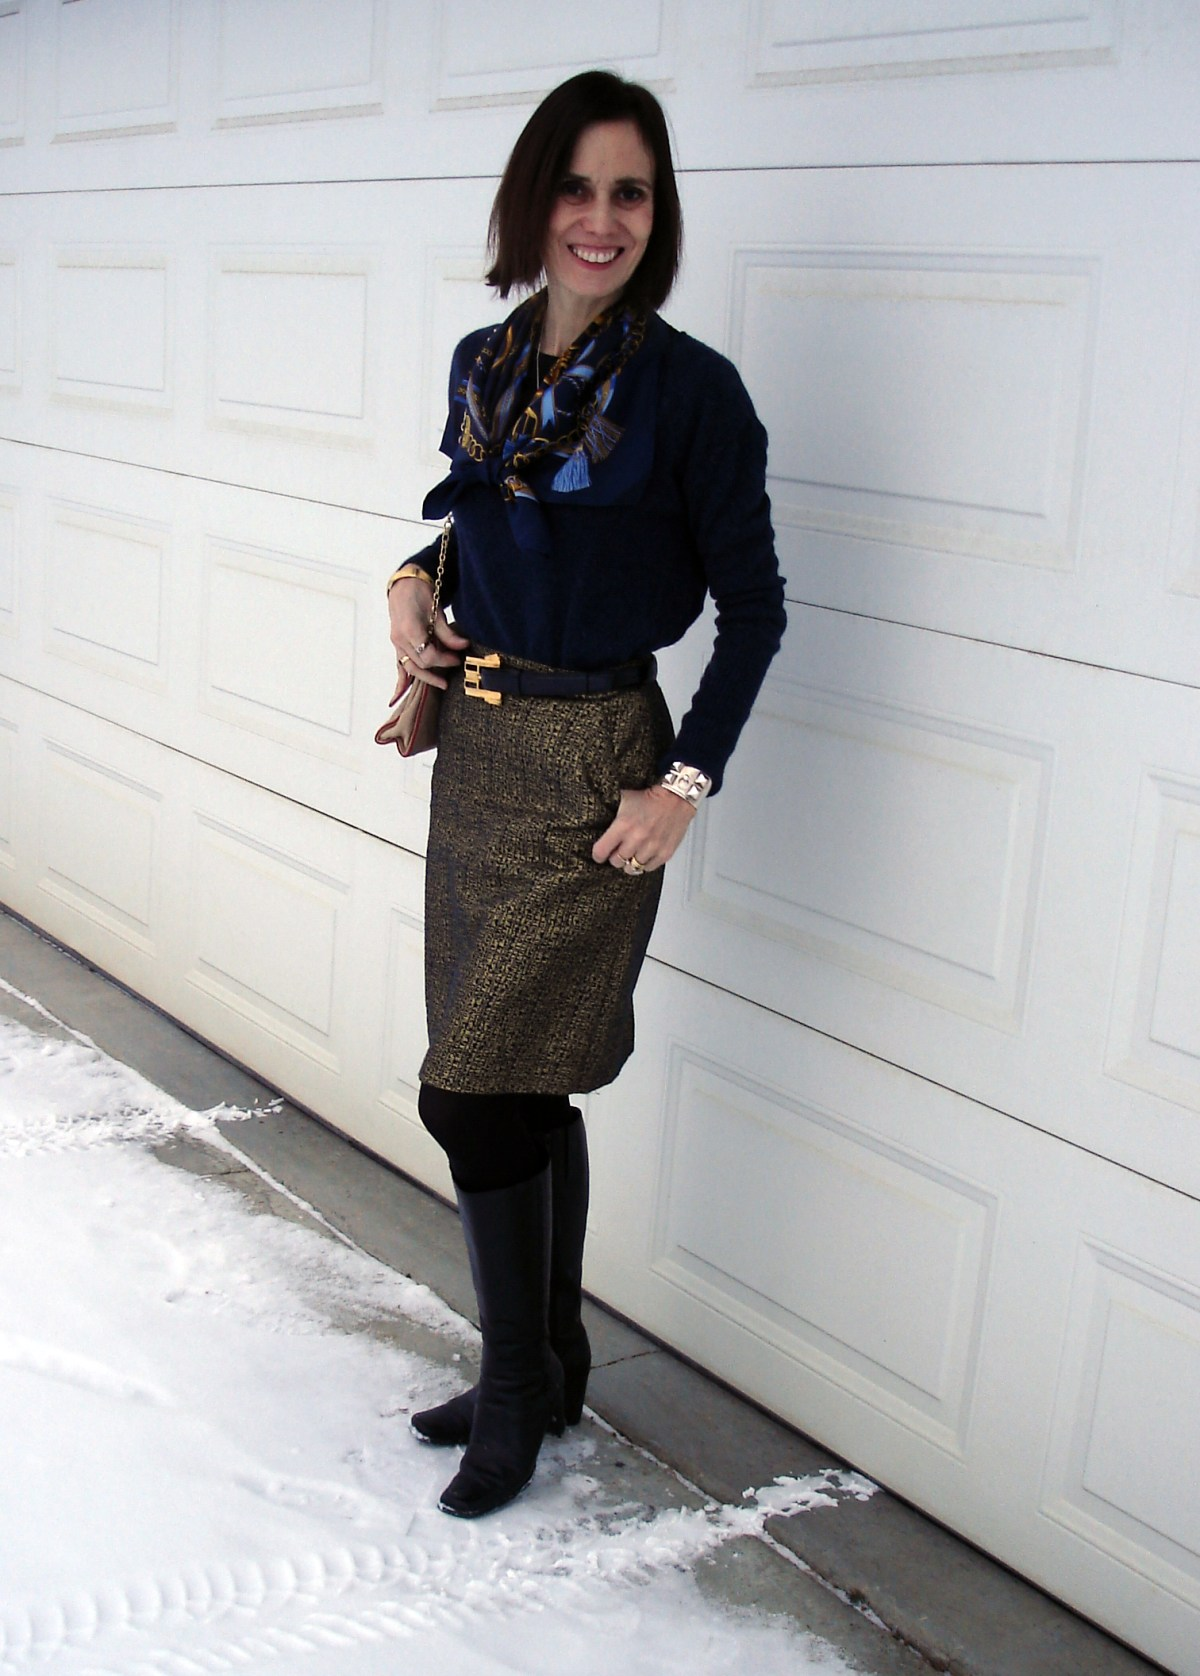 midlife fashion blogger wearing a brocade skirt